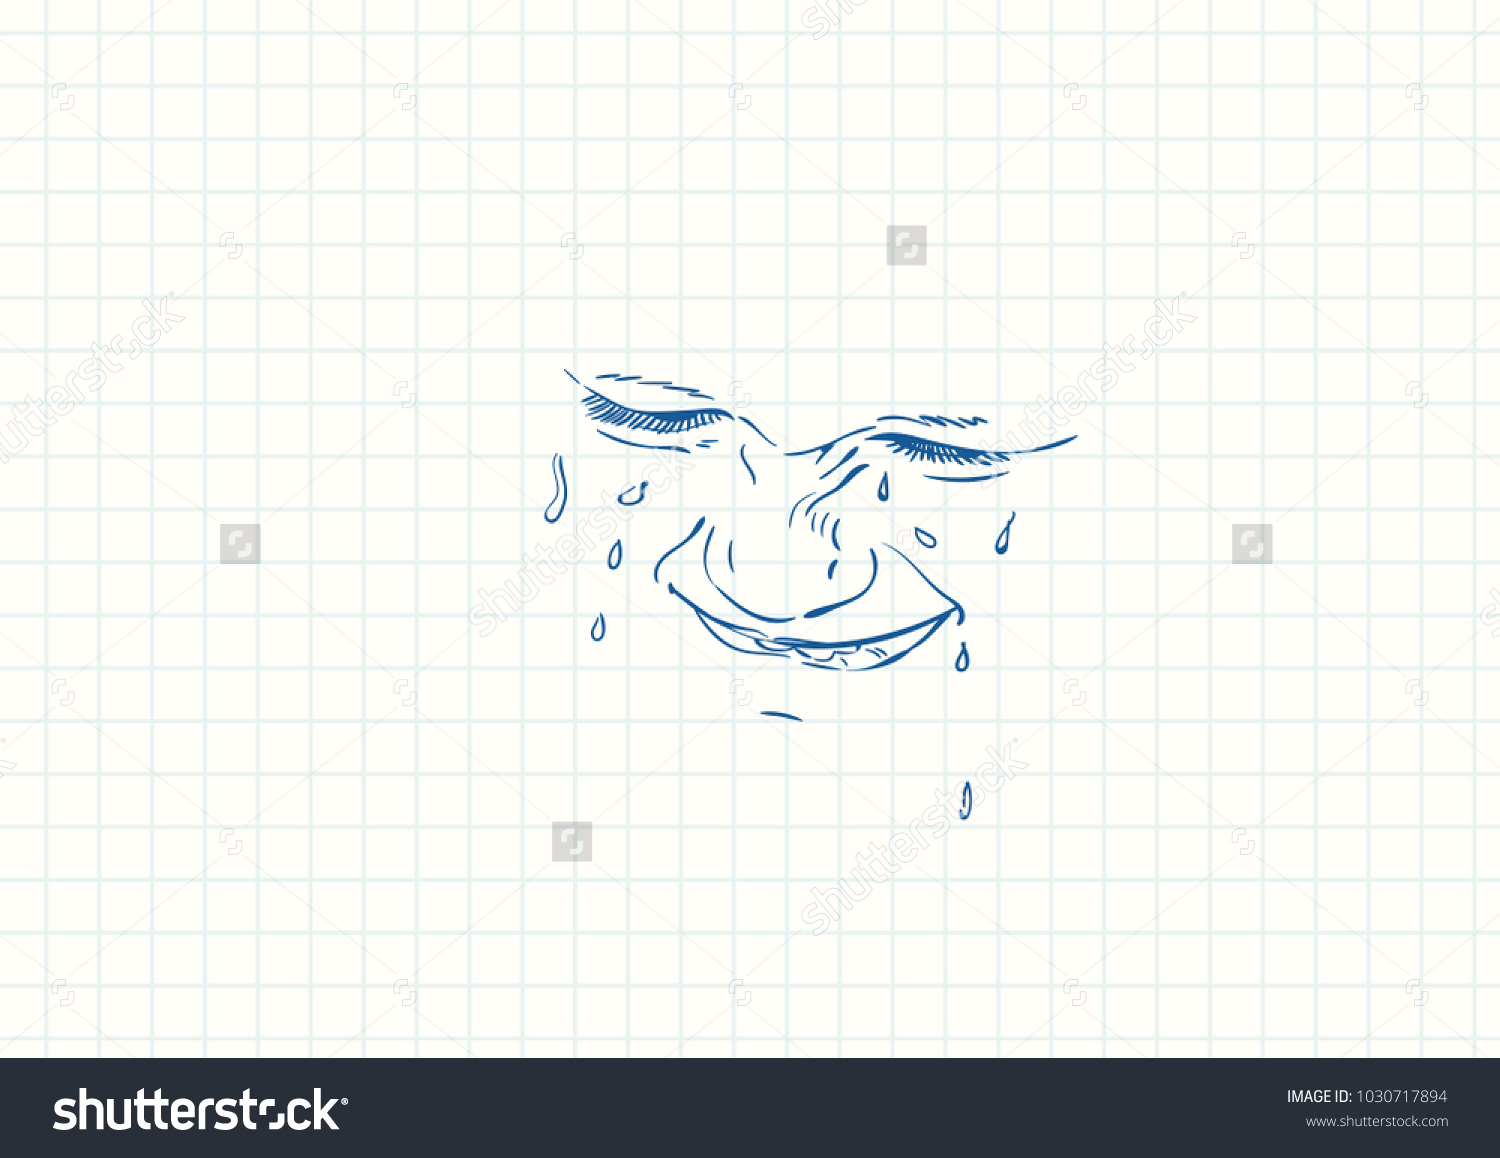 Line Drawing Of Child S Face : Blue pen sketch on square grid stock vector shutterstock